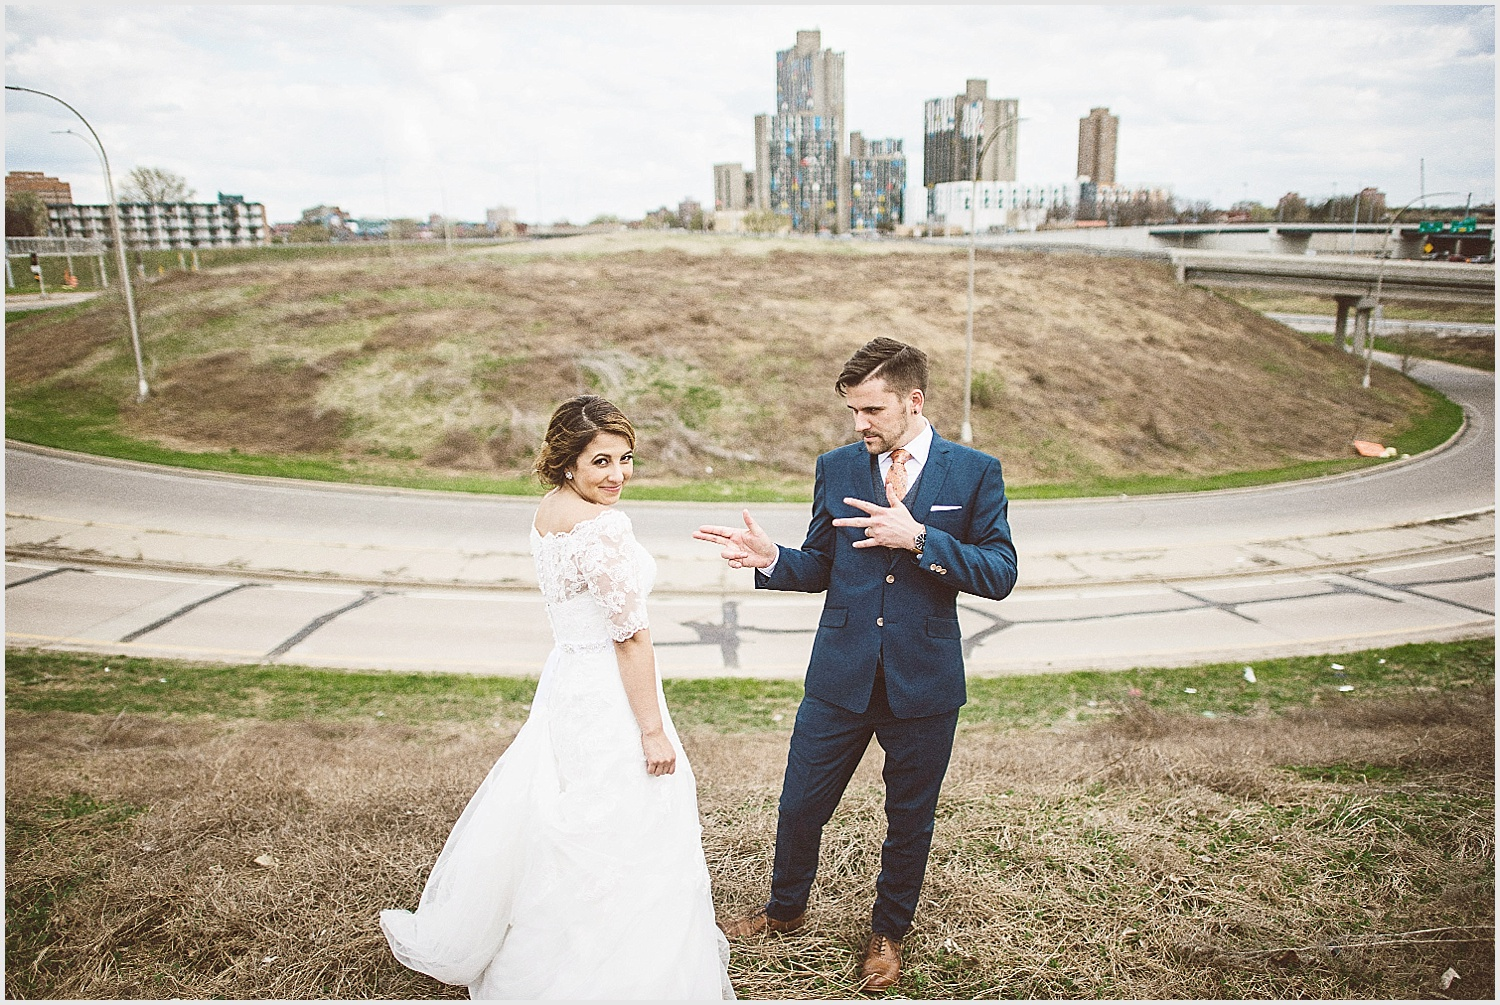 zaspels_Minneapolis_wedding_portraits_lucas_botz_photography_027.jpg